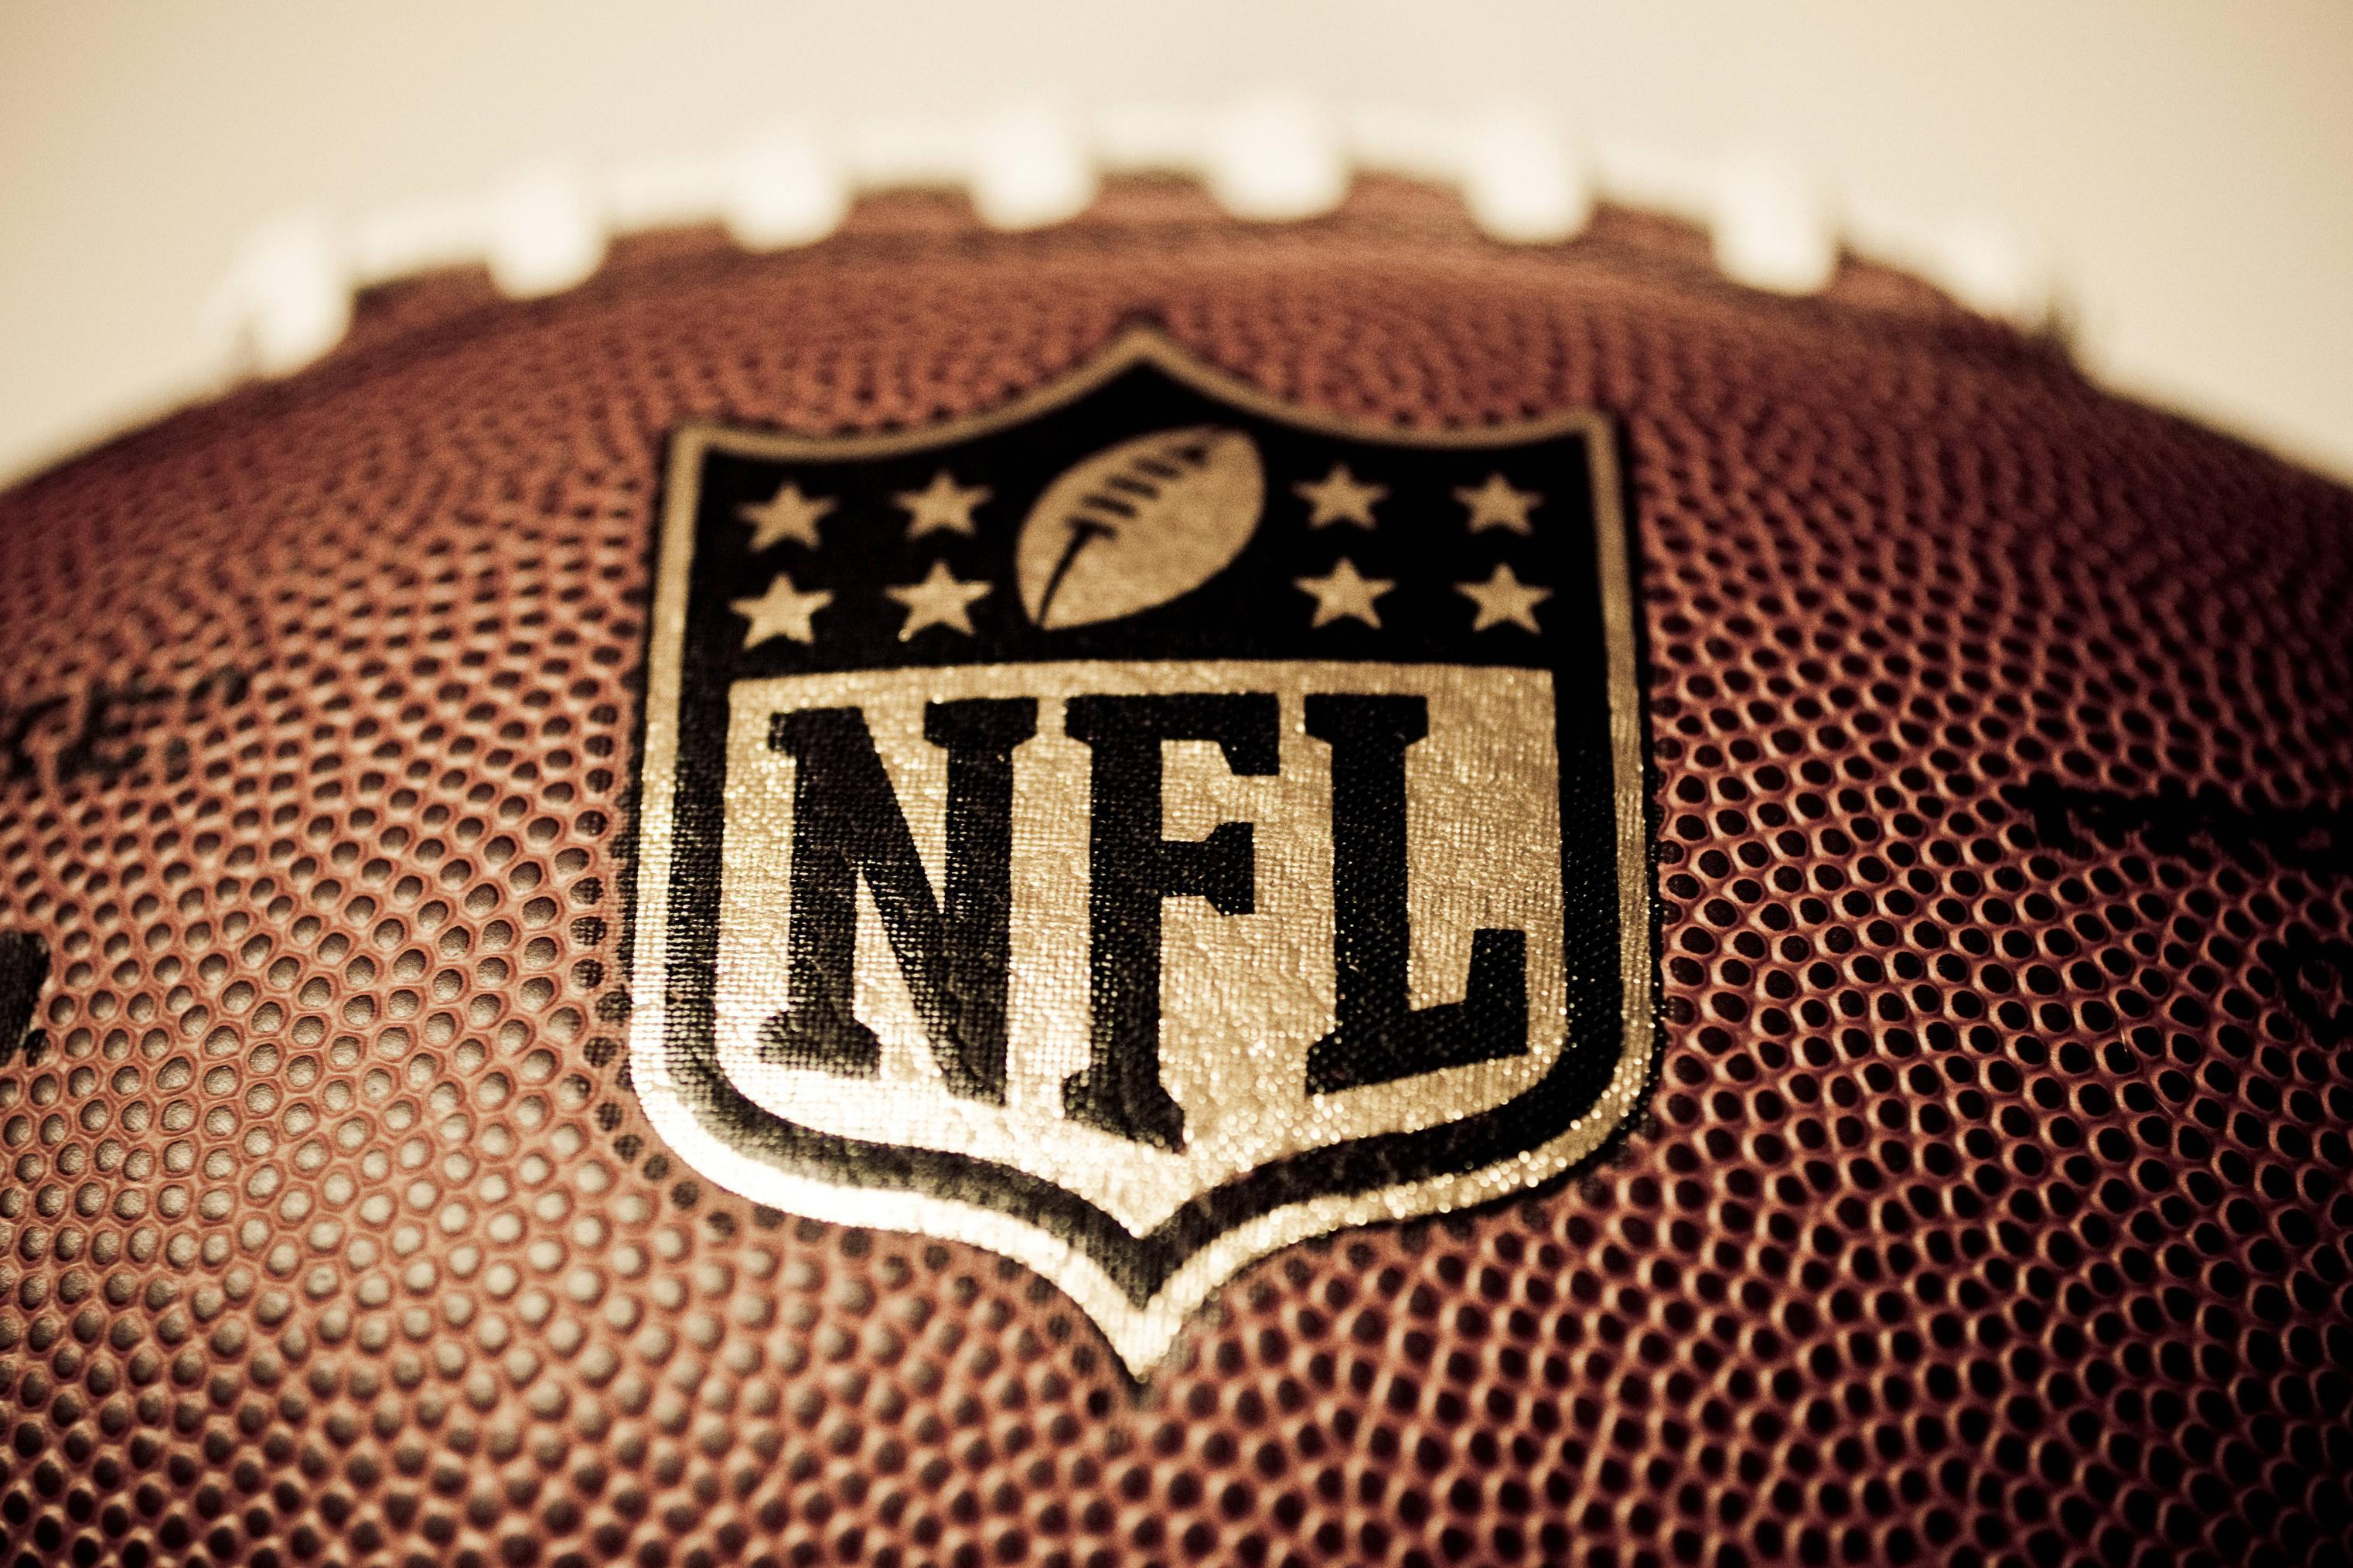 American Football Wallpapers Backgrounds By Fexy Apps: NFL Football Wallpapers